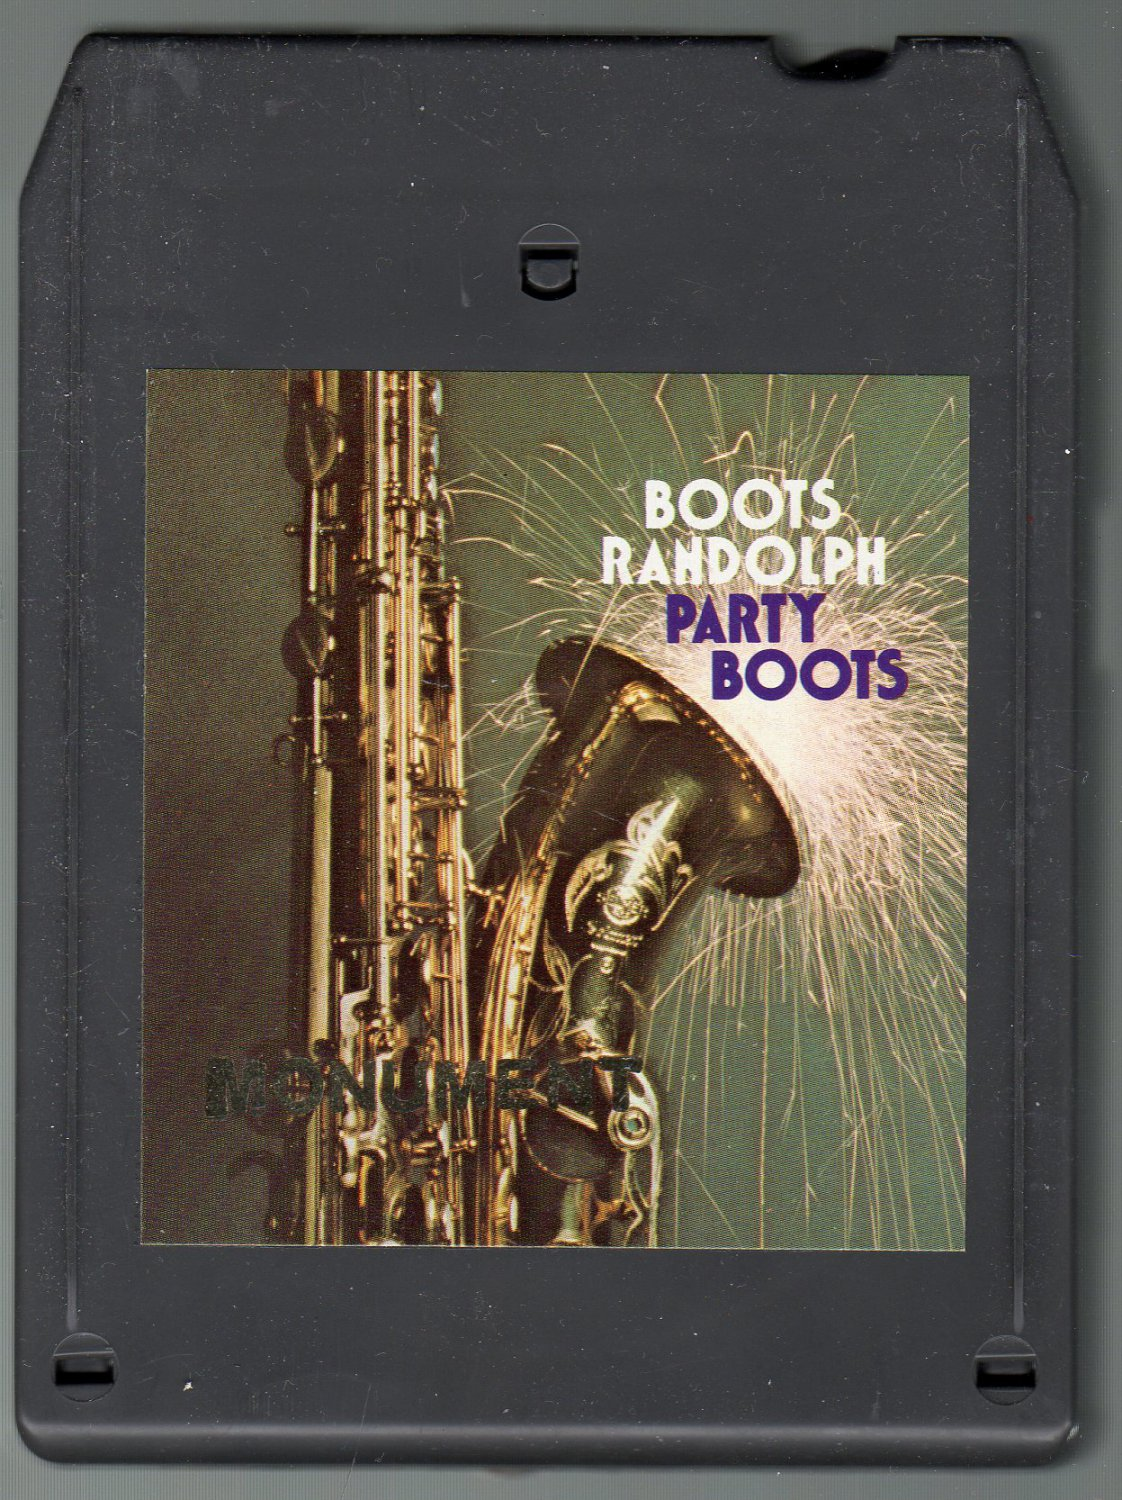 Boots Randolph - Party Boots 1976 MONUMENT DEMO A52 8-track tape